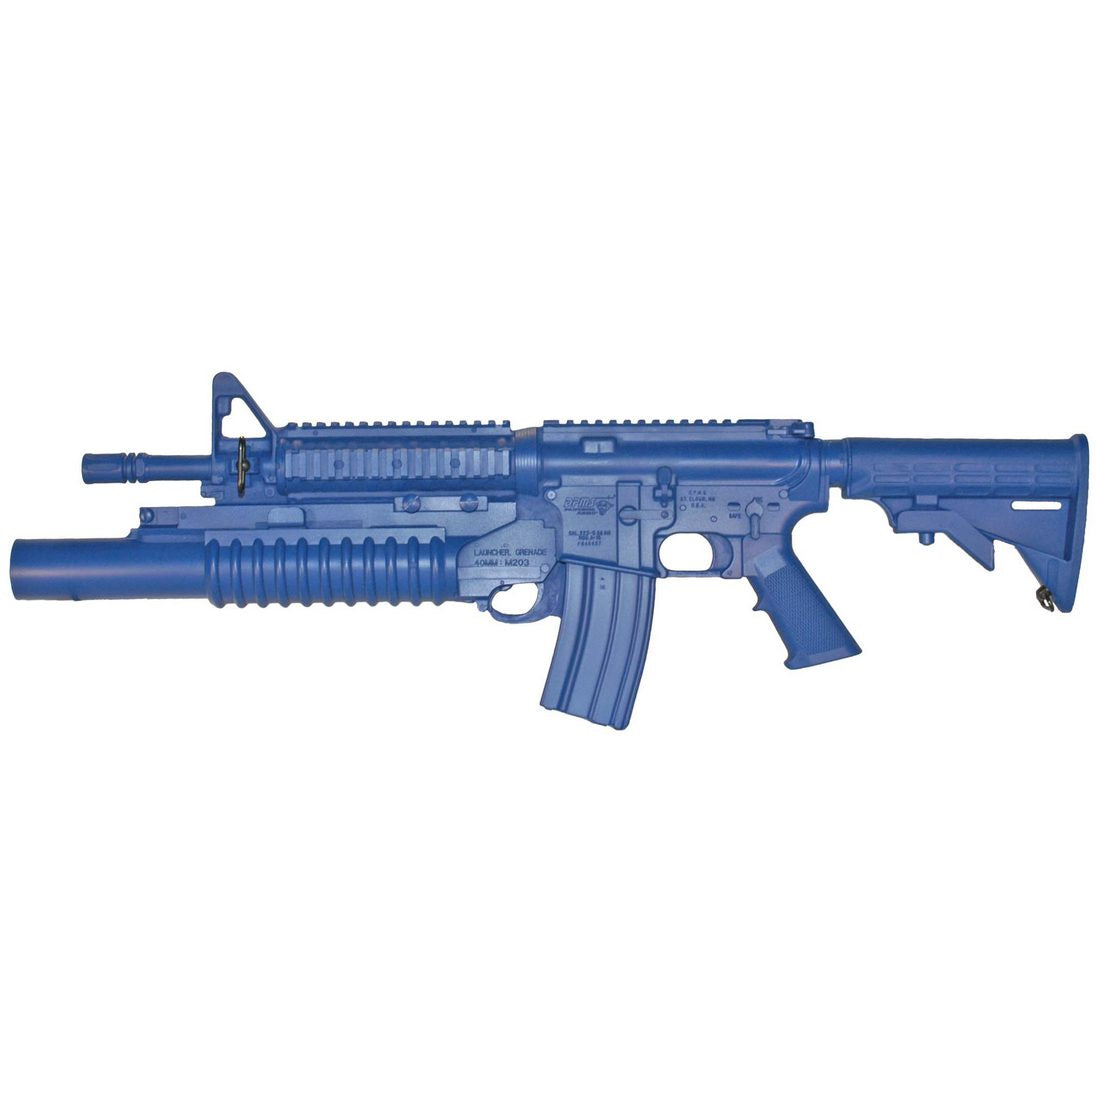 Blueguns FSM4CFTRCSM203 M4 COMMANDO Flat Top Closed Stock, Fwd Rail, M203 Grenade Launcher